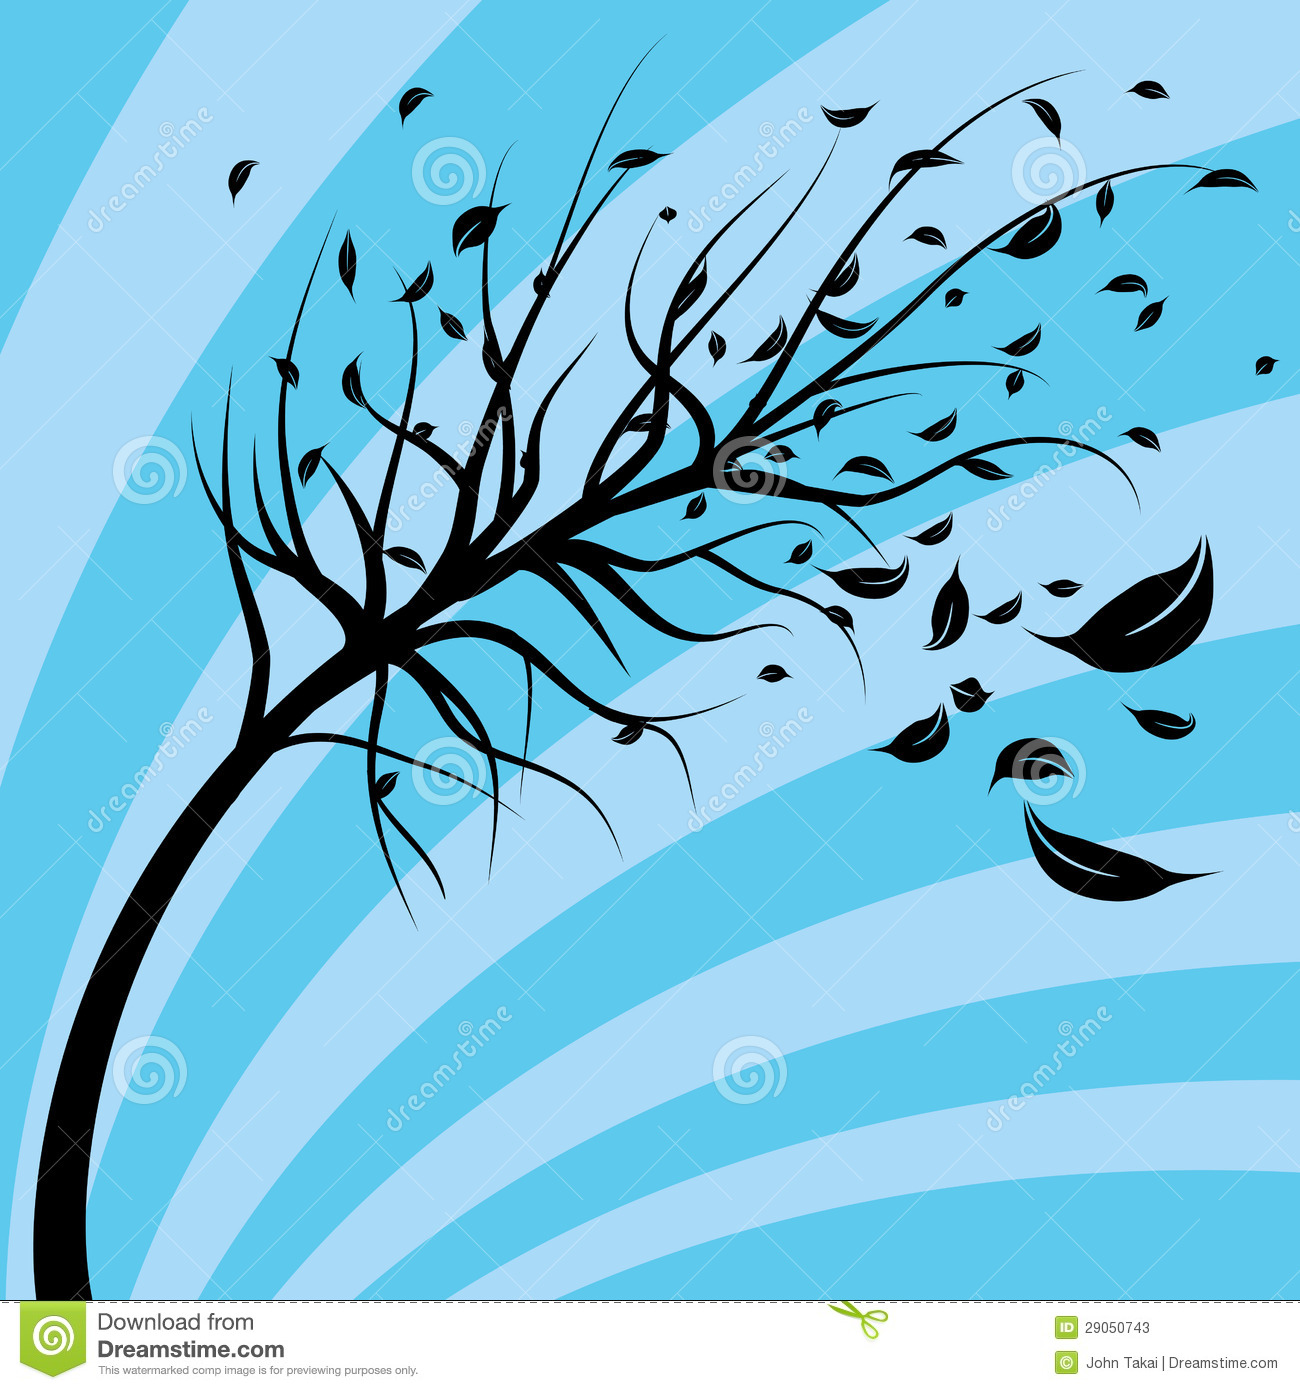 Wind Blown Tree Stock Photos - Image: 29050743